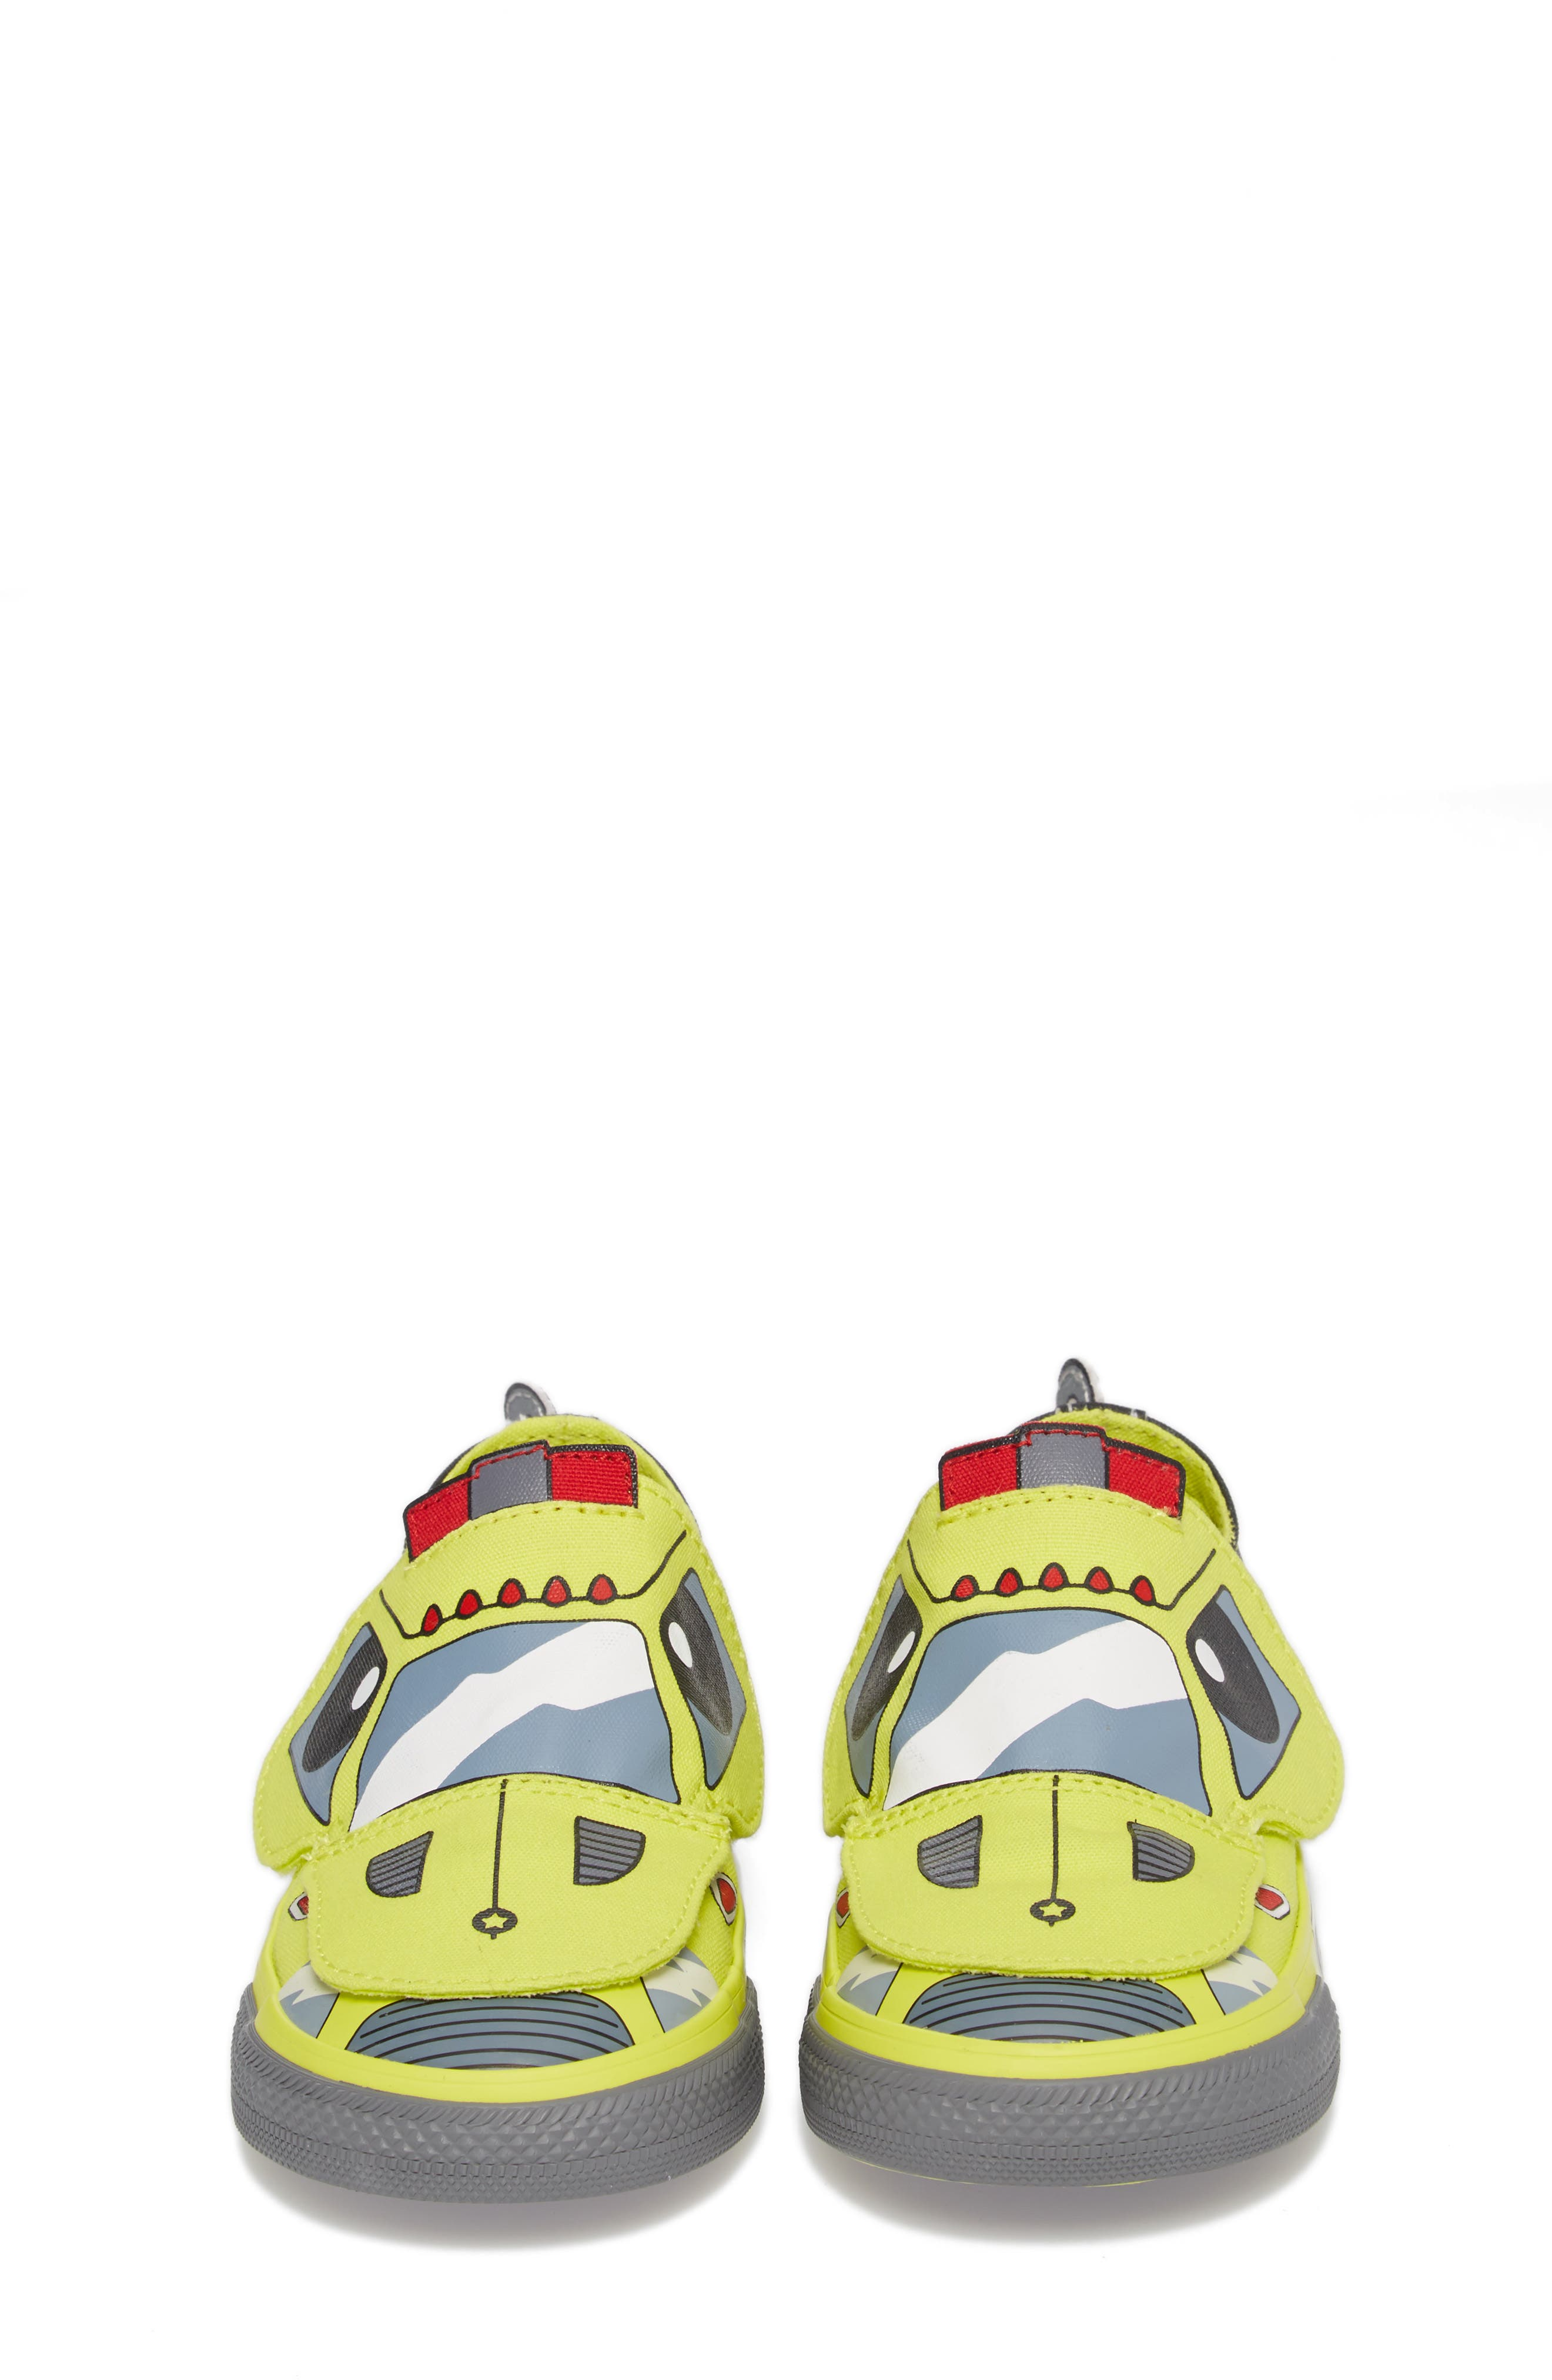 Chuck Taylor<sup>®</sup> All Star<sup>®</sup> Creatures Slip-On Sneaker,                             Alternate thumbnail 12, color,